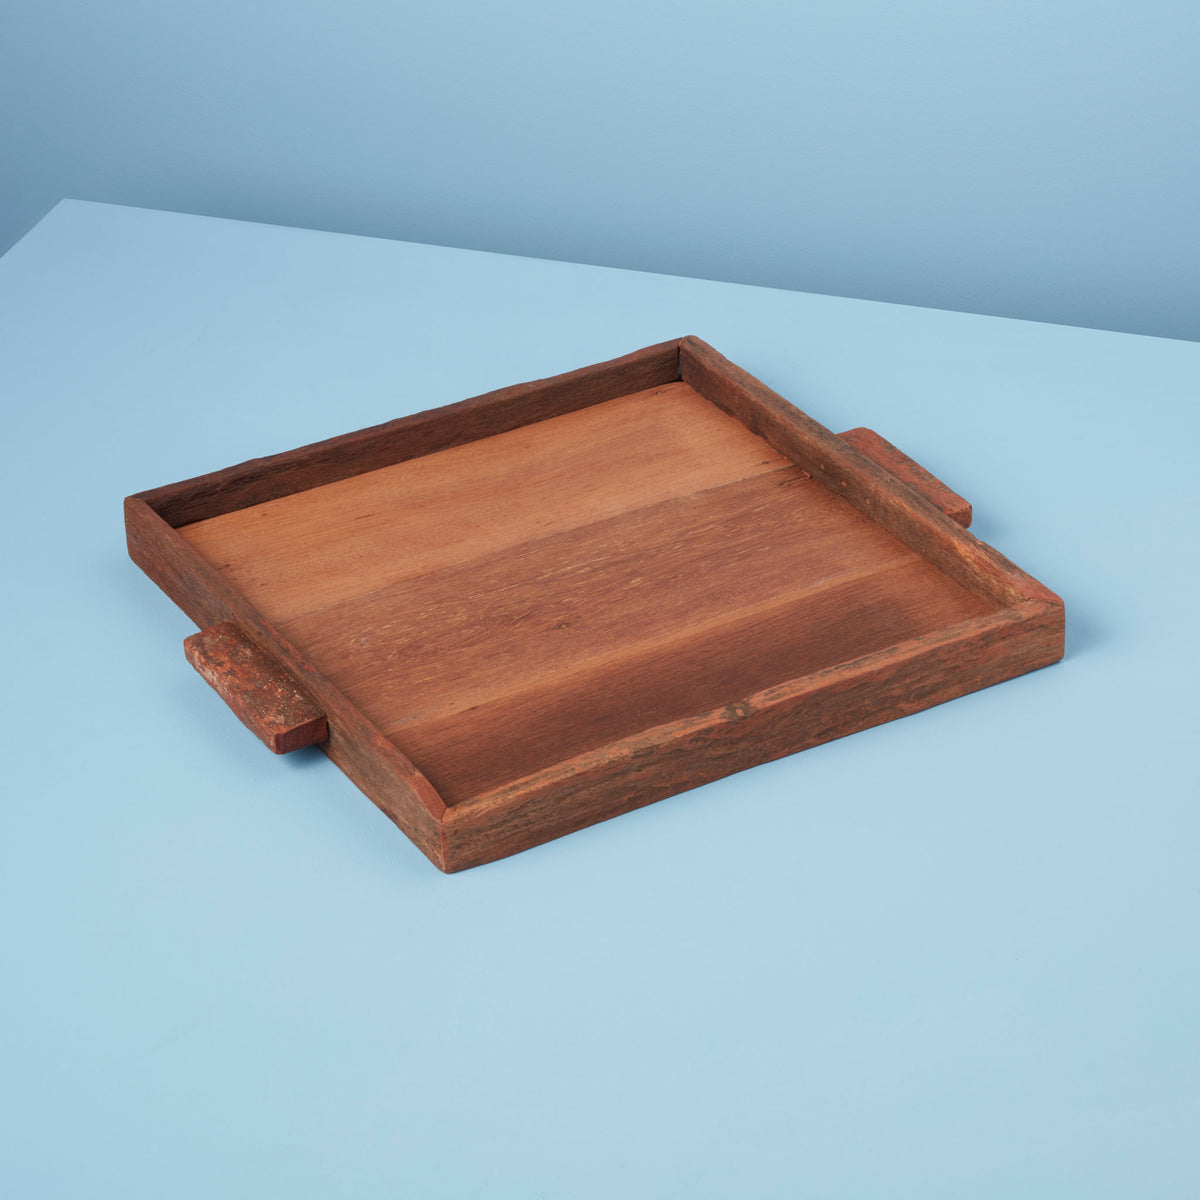 Reclaimed Wood Tray Square, Large